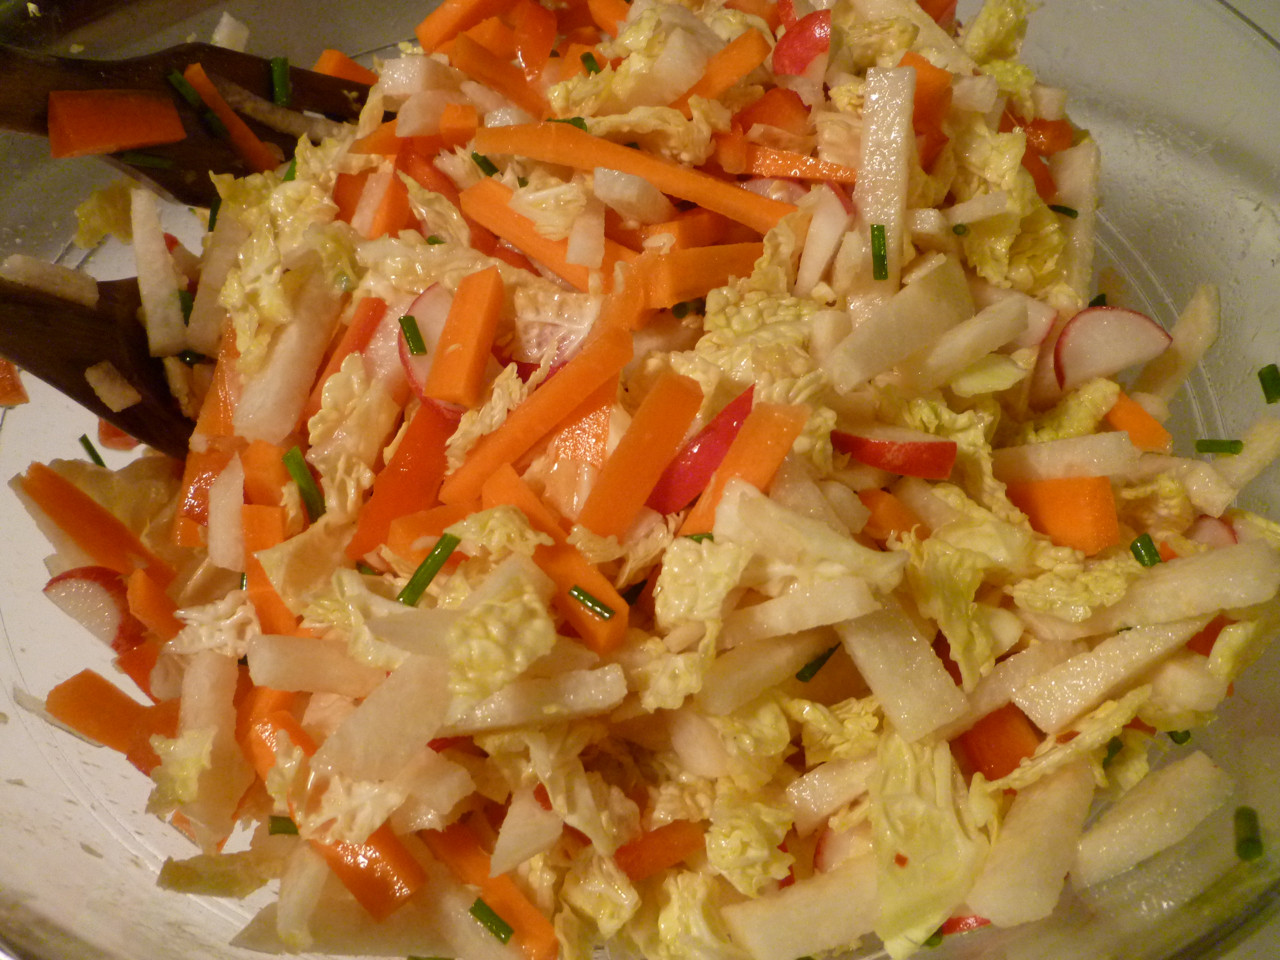 Crunchy carrot, jicama, and radish slaw